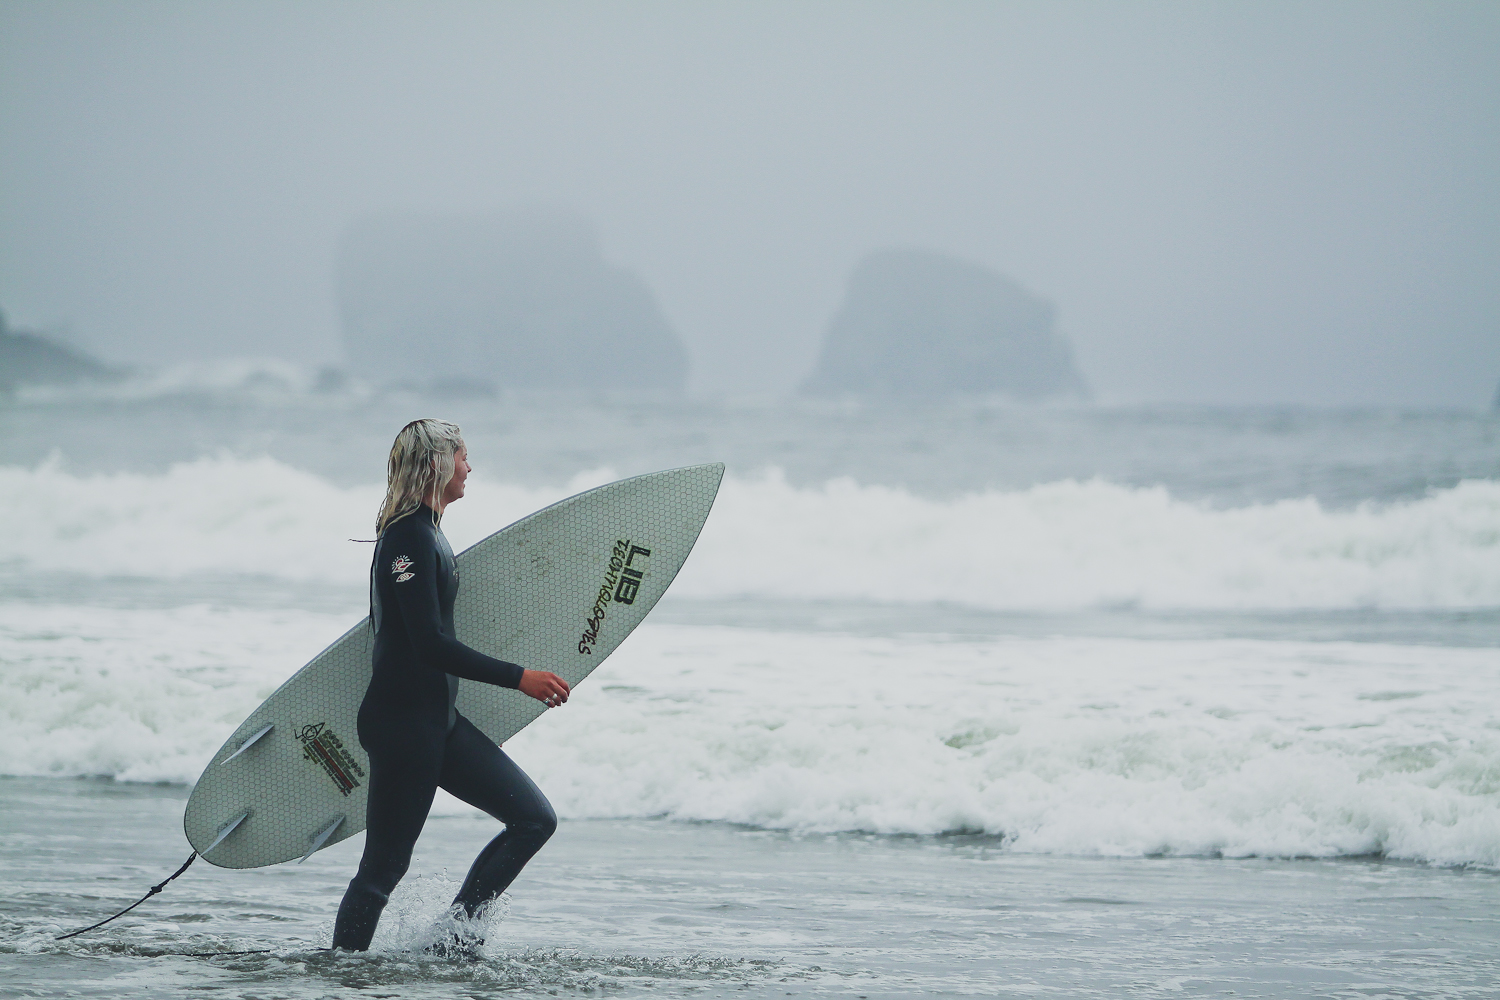 shasta goin for beach chic with new lib tech waterboard